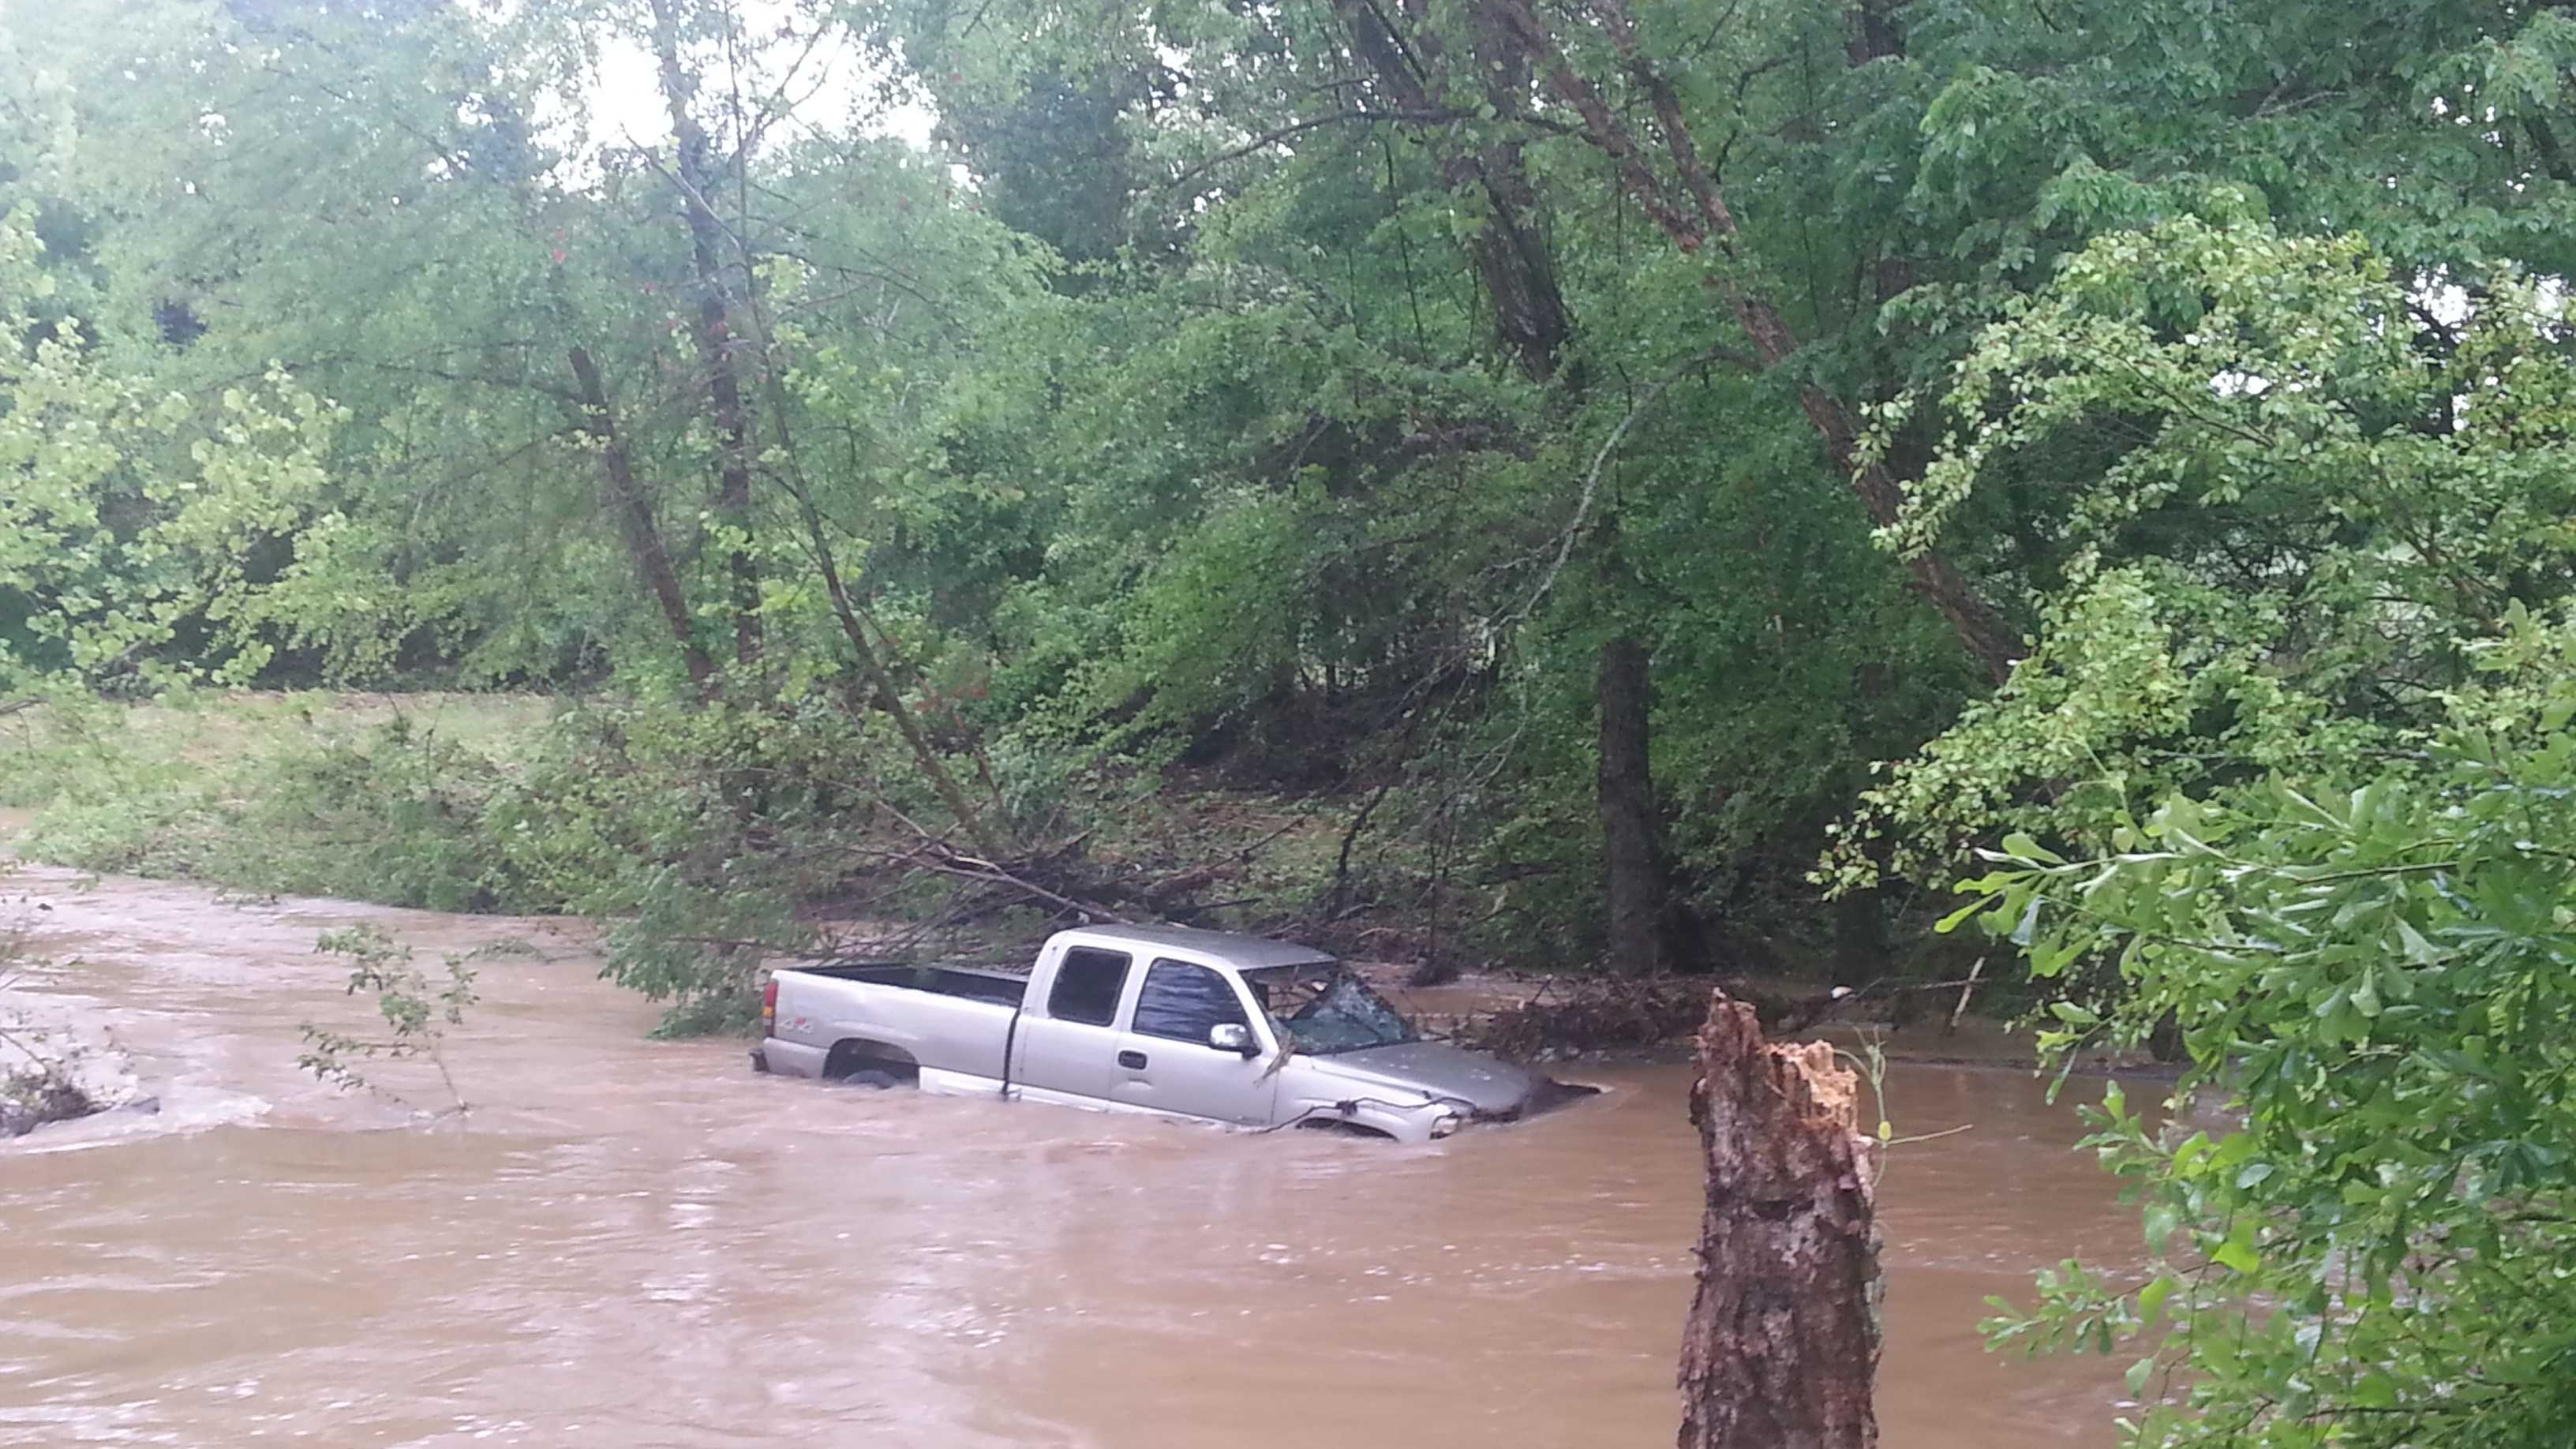 Truck in flooded waters